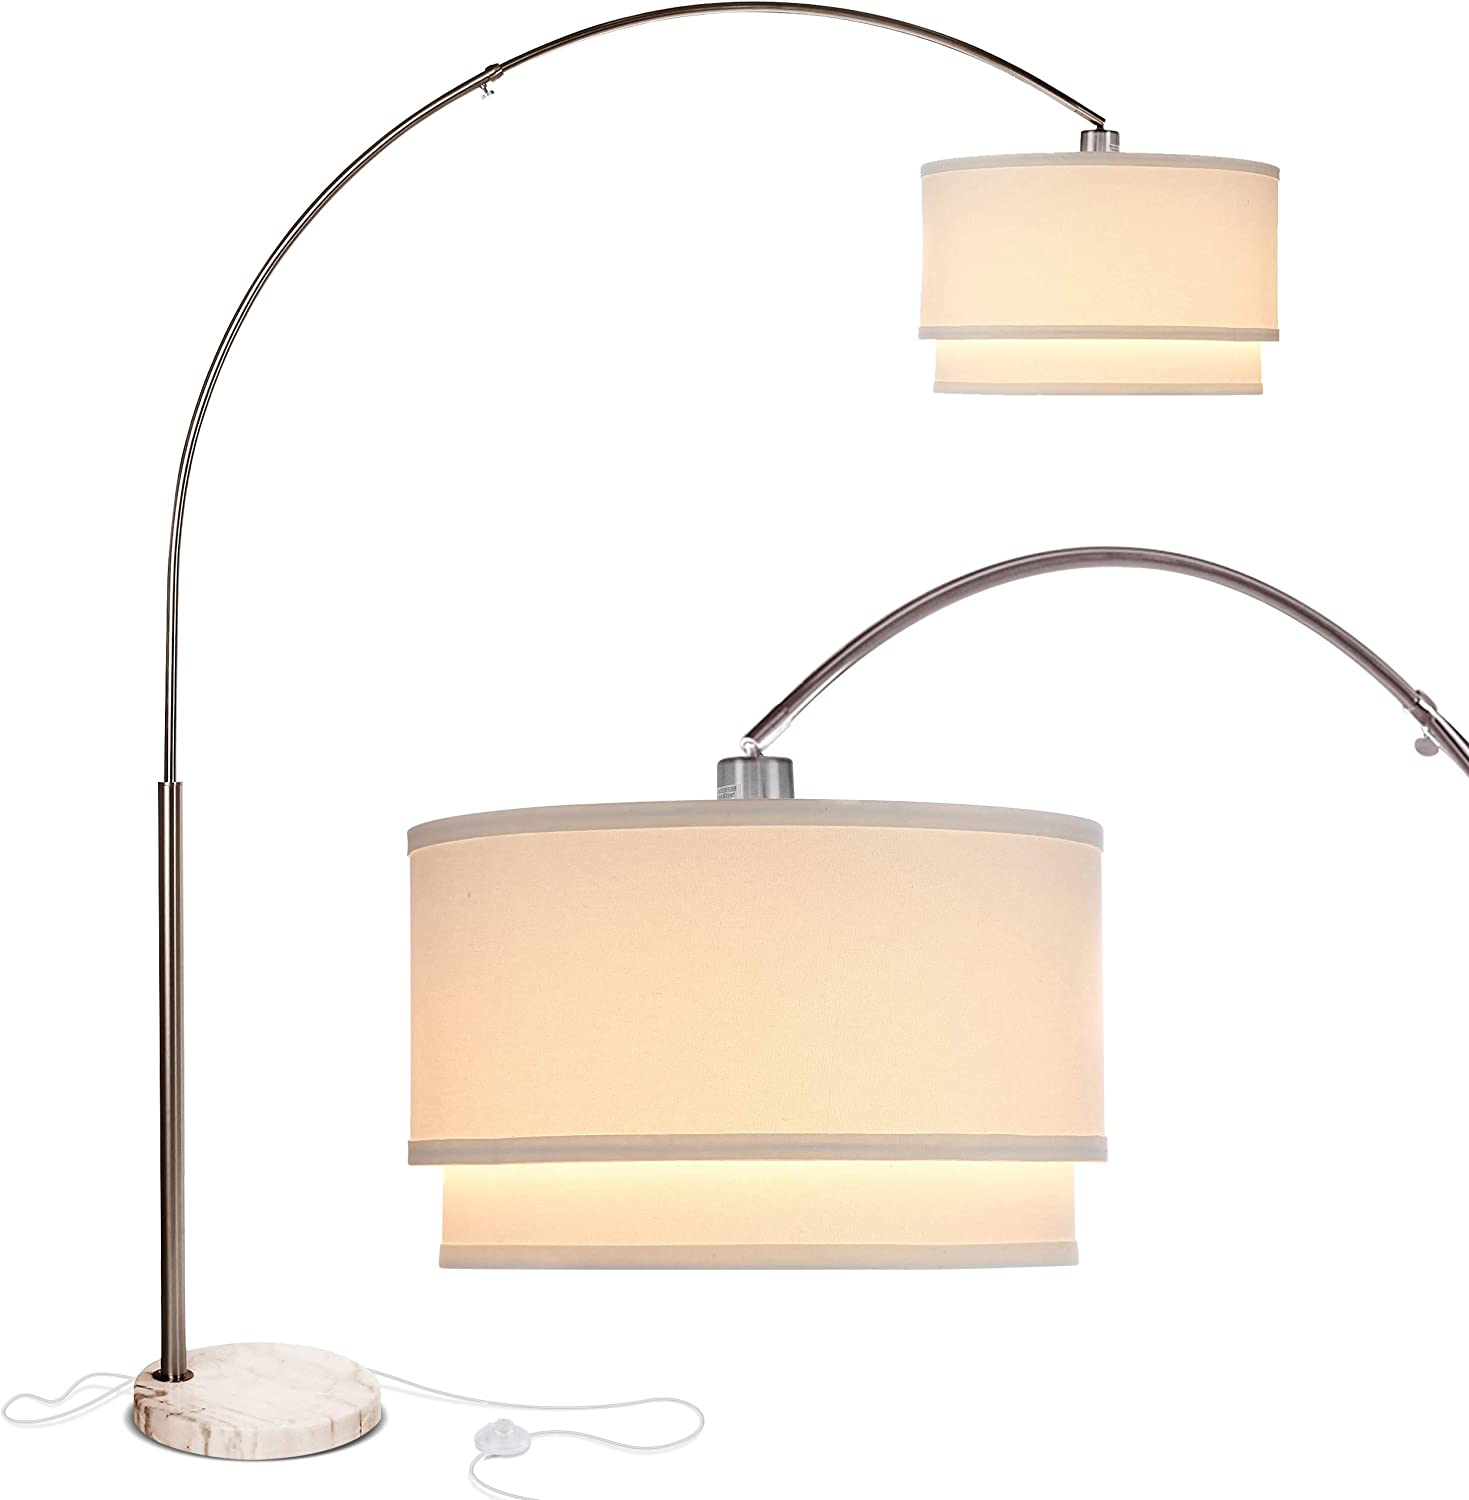 Shop Arc Floor Lamp with Unique Hanging Drum Shade from Amazon on Openhaus